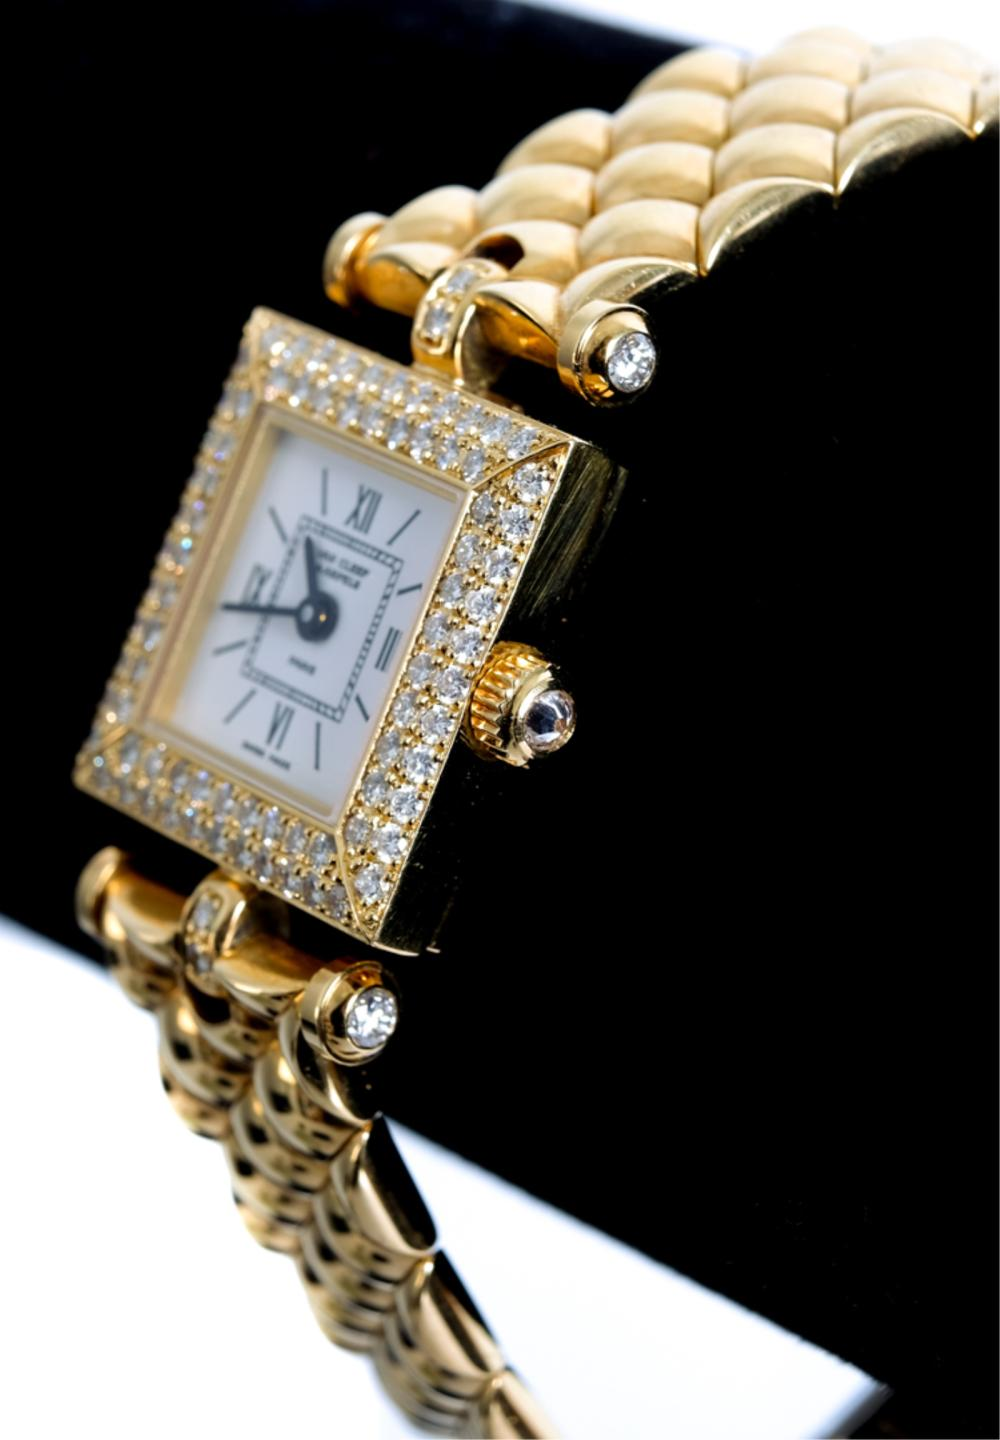 VCA 18K YG & Diamond Classique Watch w/Box